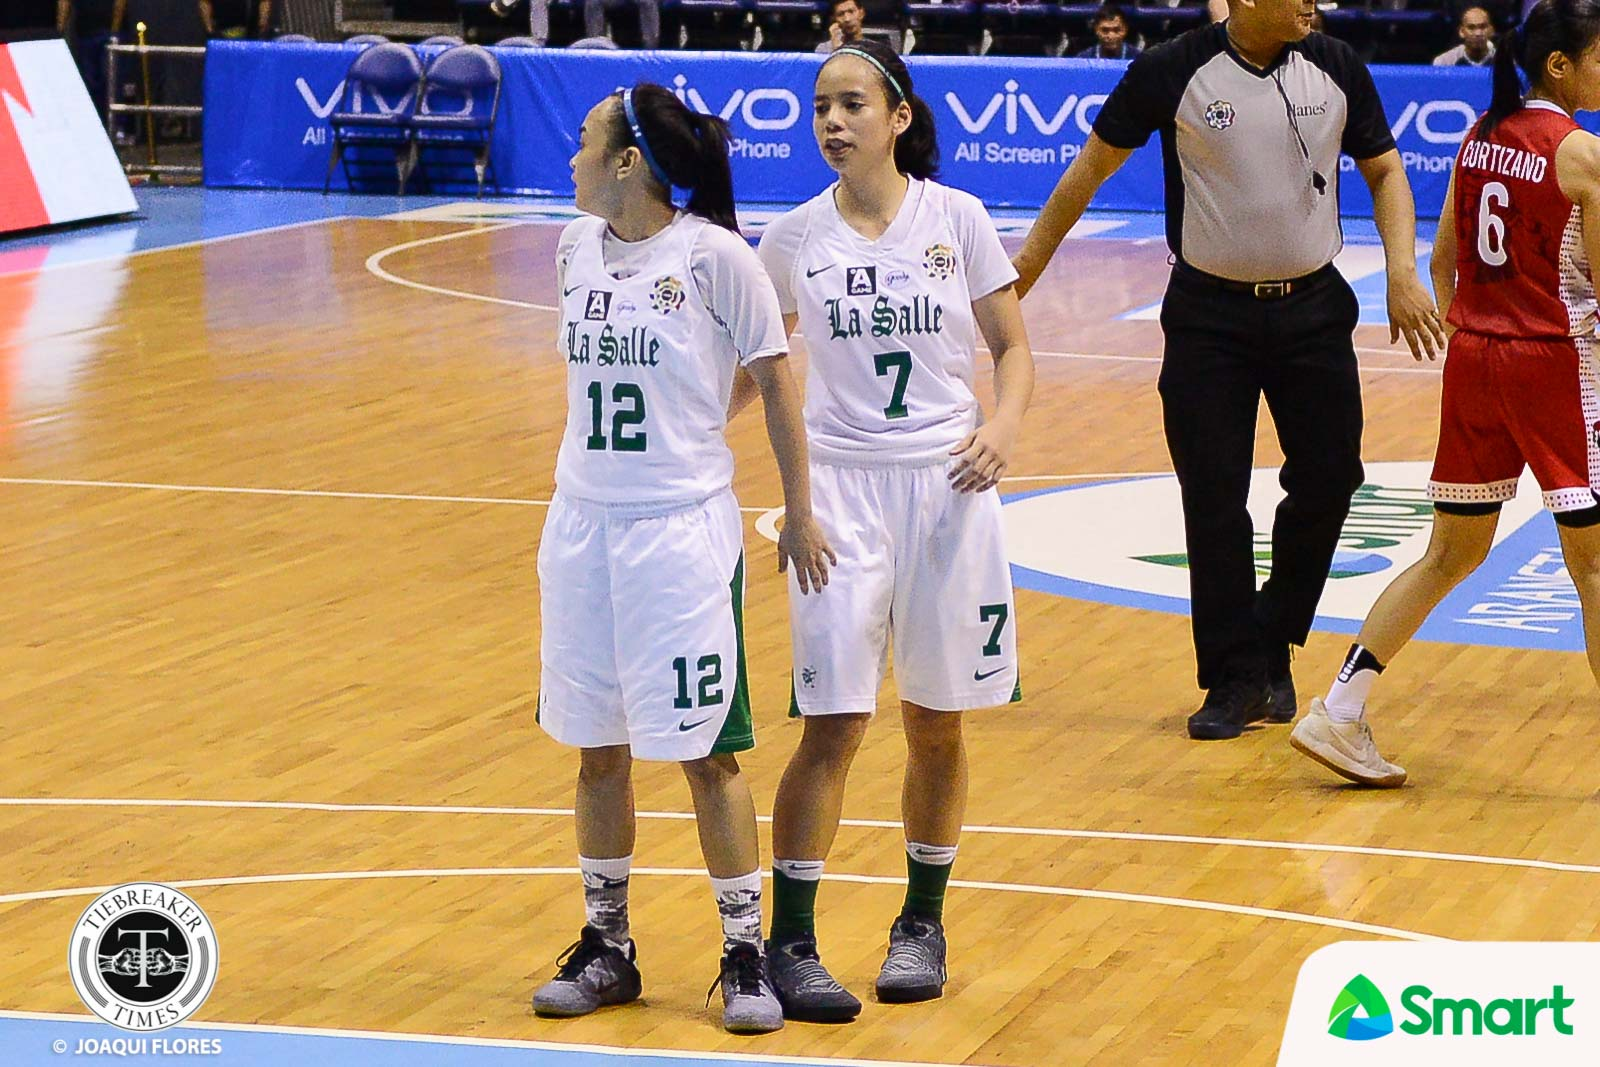 Philippine Sports News - Tiebreaker Times La Salle escapes listless UP to end season on high note Basketball DLSU News UAAP UP  UP Women's Basketball UAAP Season 80 Women's Basketball UAAP Season 80 Therese Medina Khate Castillo Kenneth Raval Kath Nunez Iriss Isip DLSU Women's Basketball Cholo Villanueva